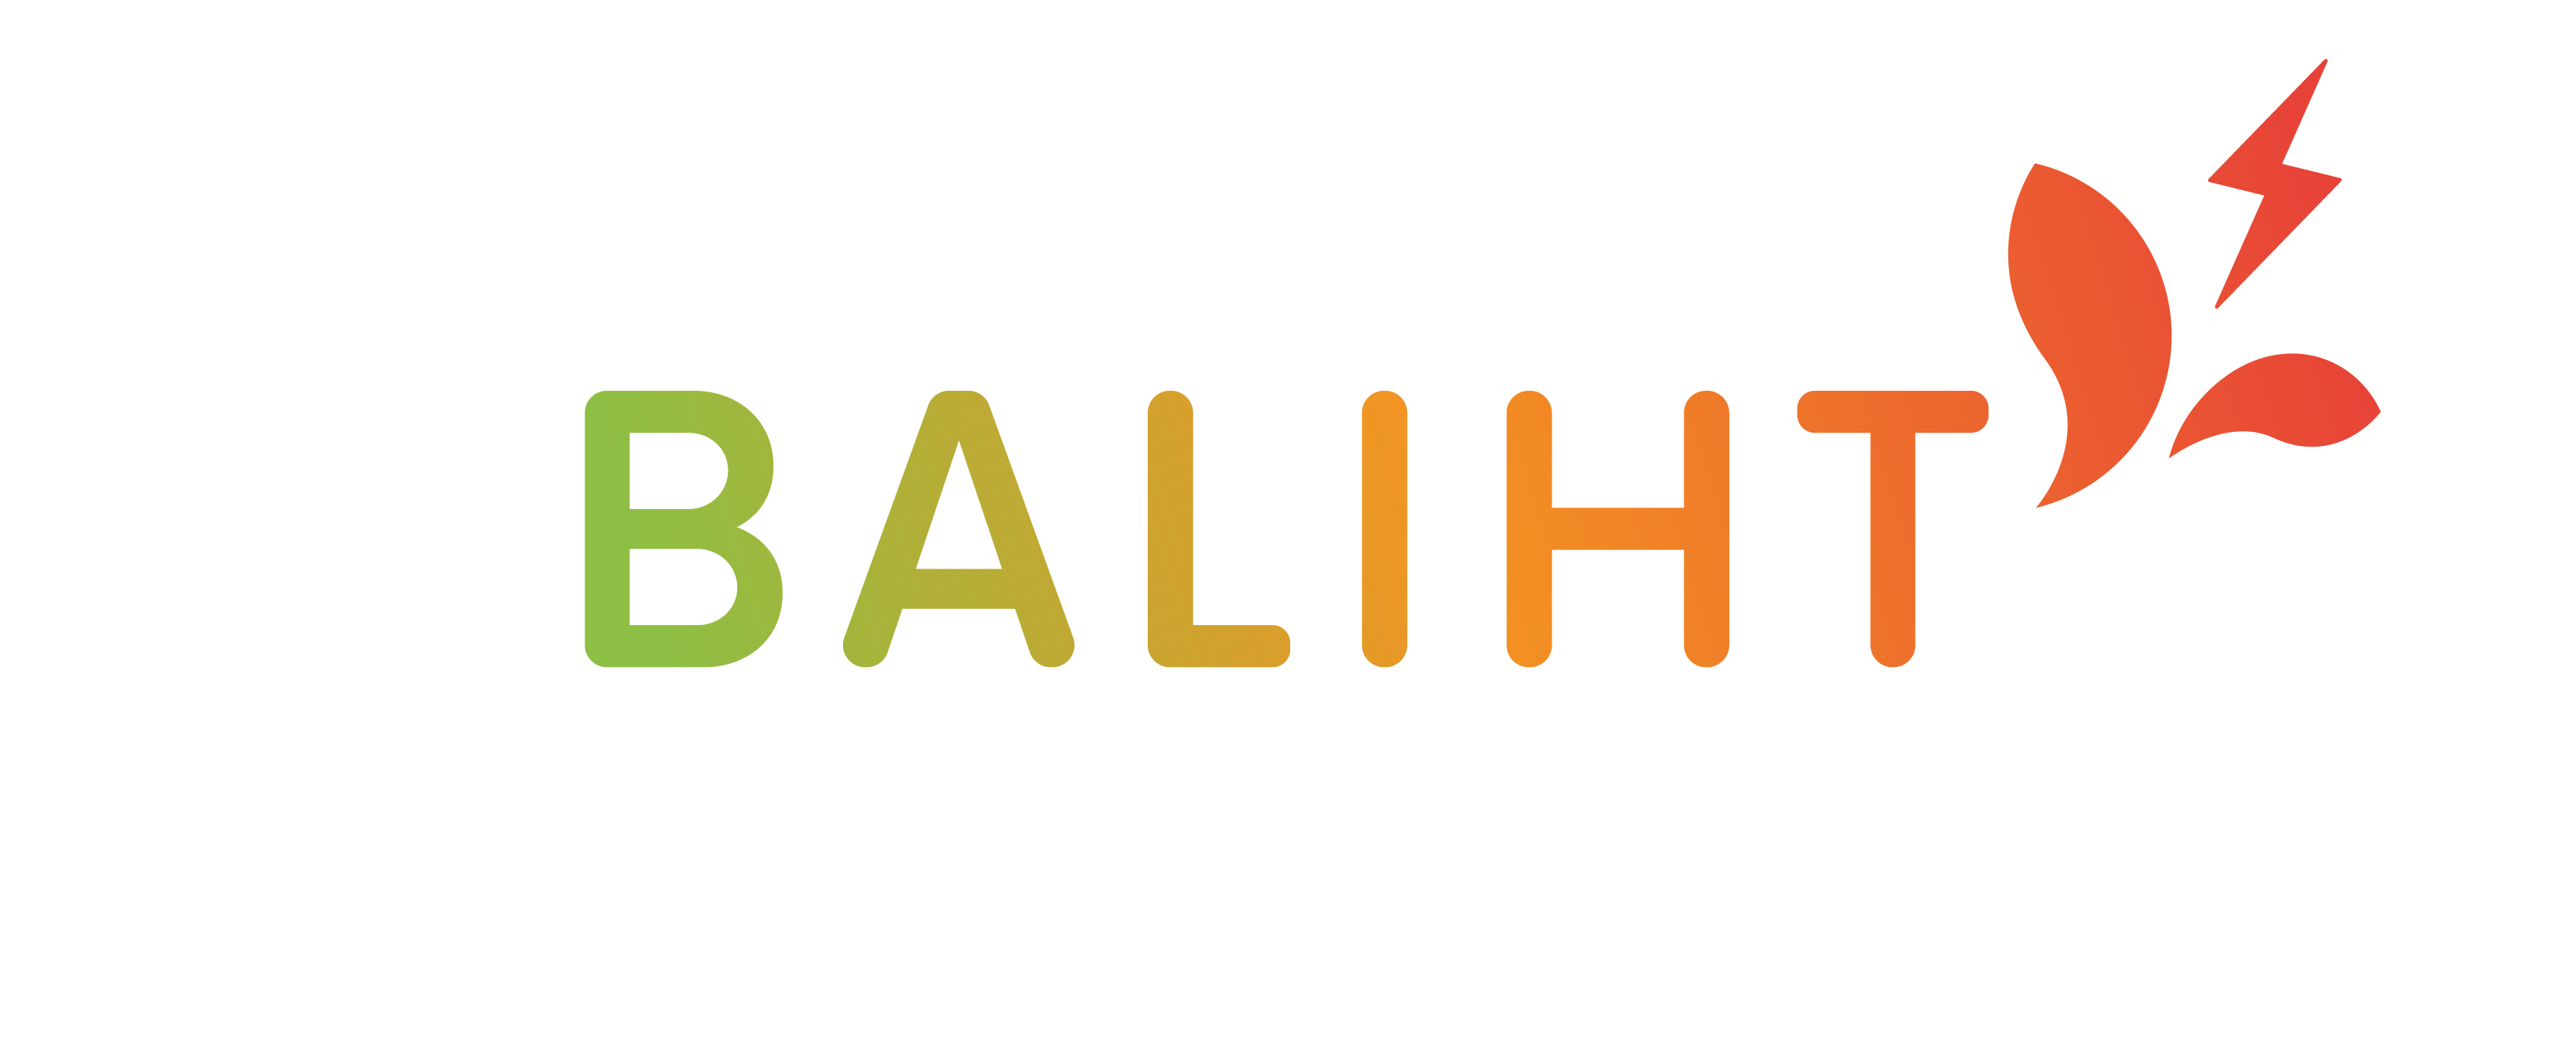 BALITH- Development of full lignin based organic redox flow battery suitable to work in warm environments and heavy multicycle uses.